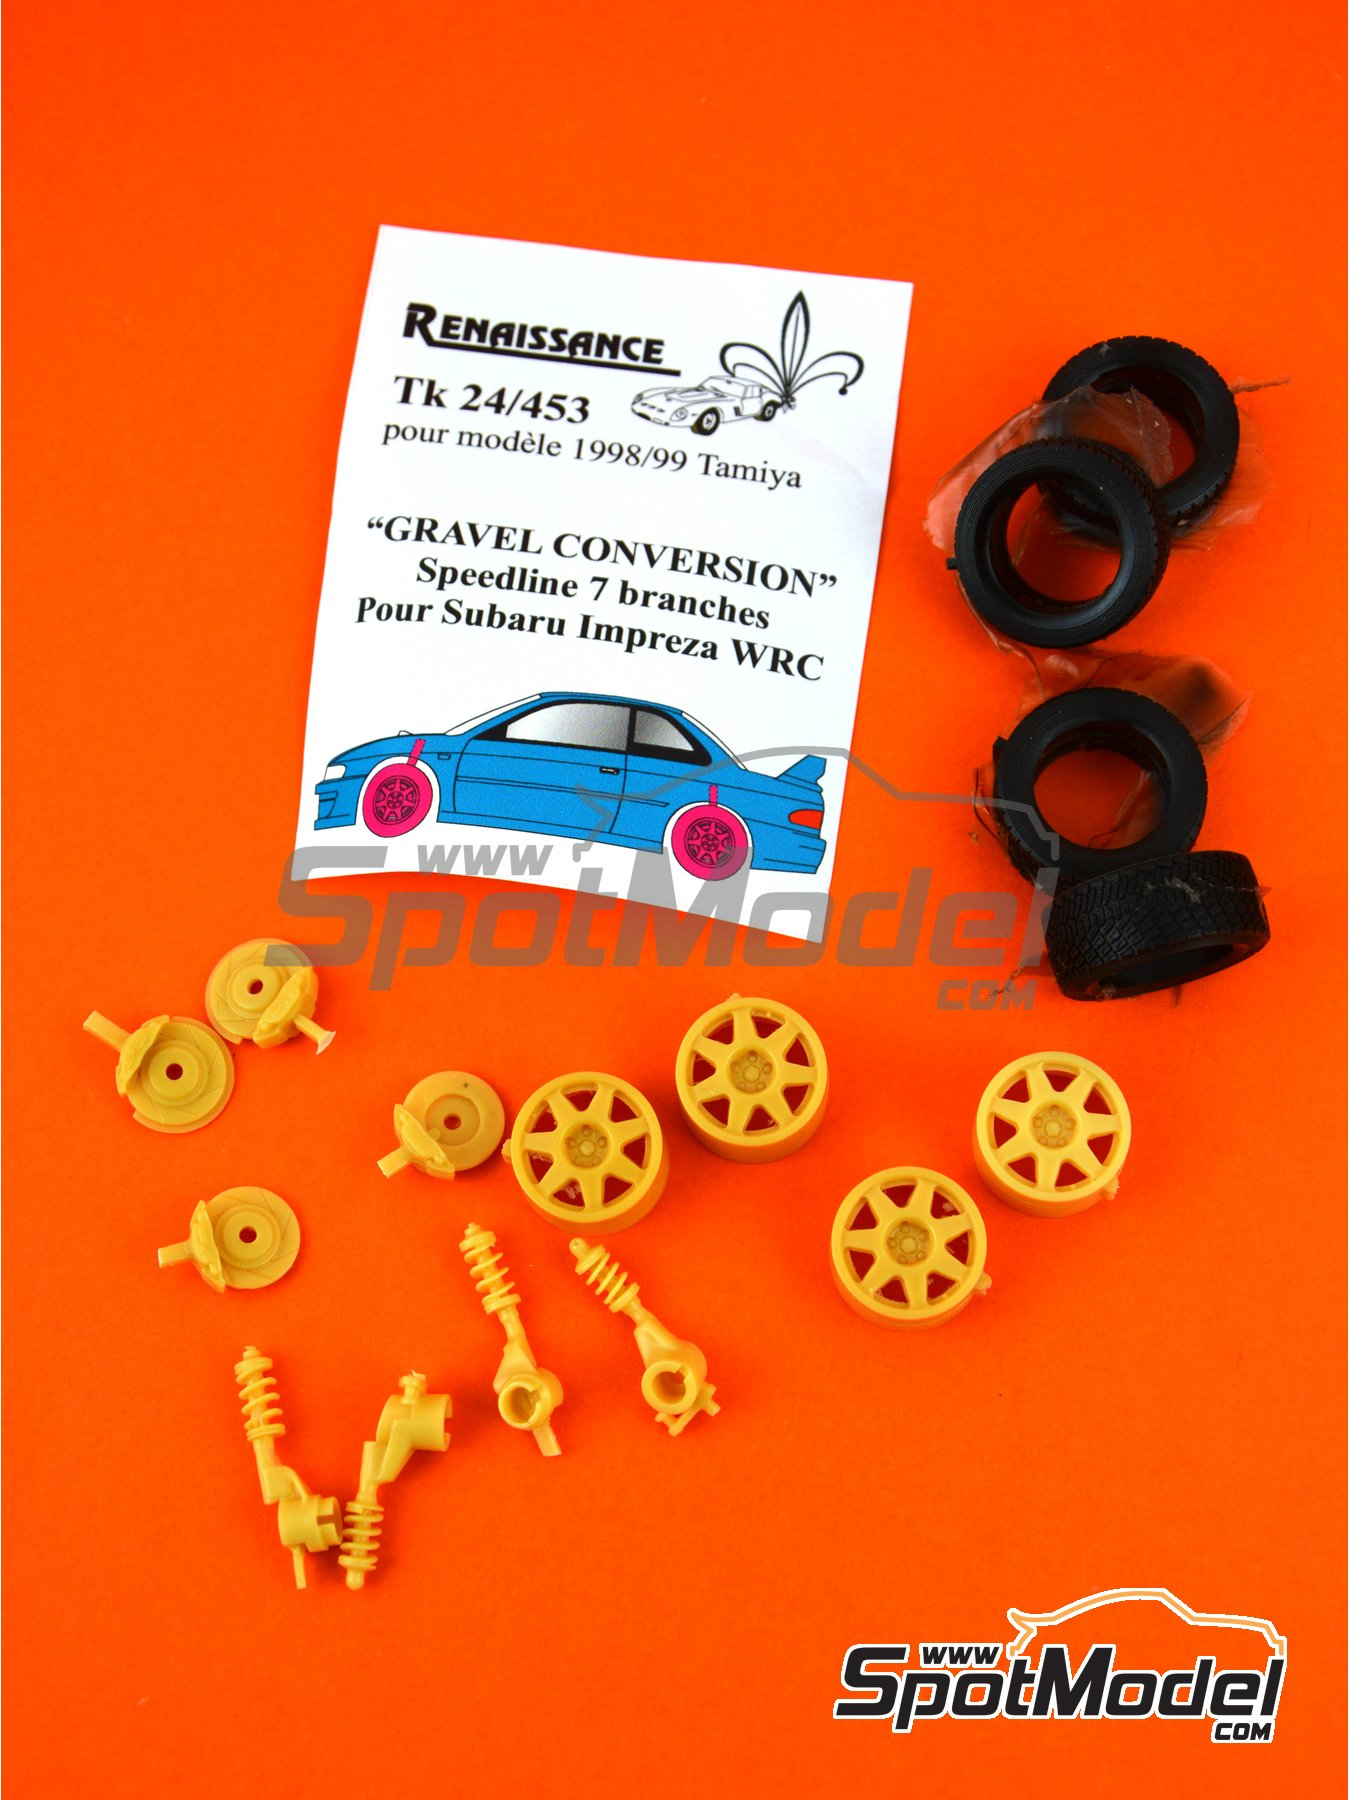 Speedline 7 radios -  1998 y 1999 | Gravel set-up en escala 1/24 fabricado por Renaissance Models (ref. TK24-453) image